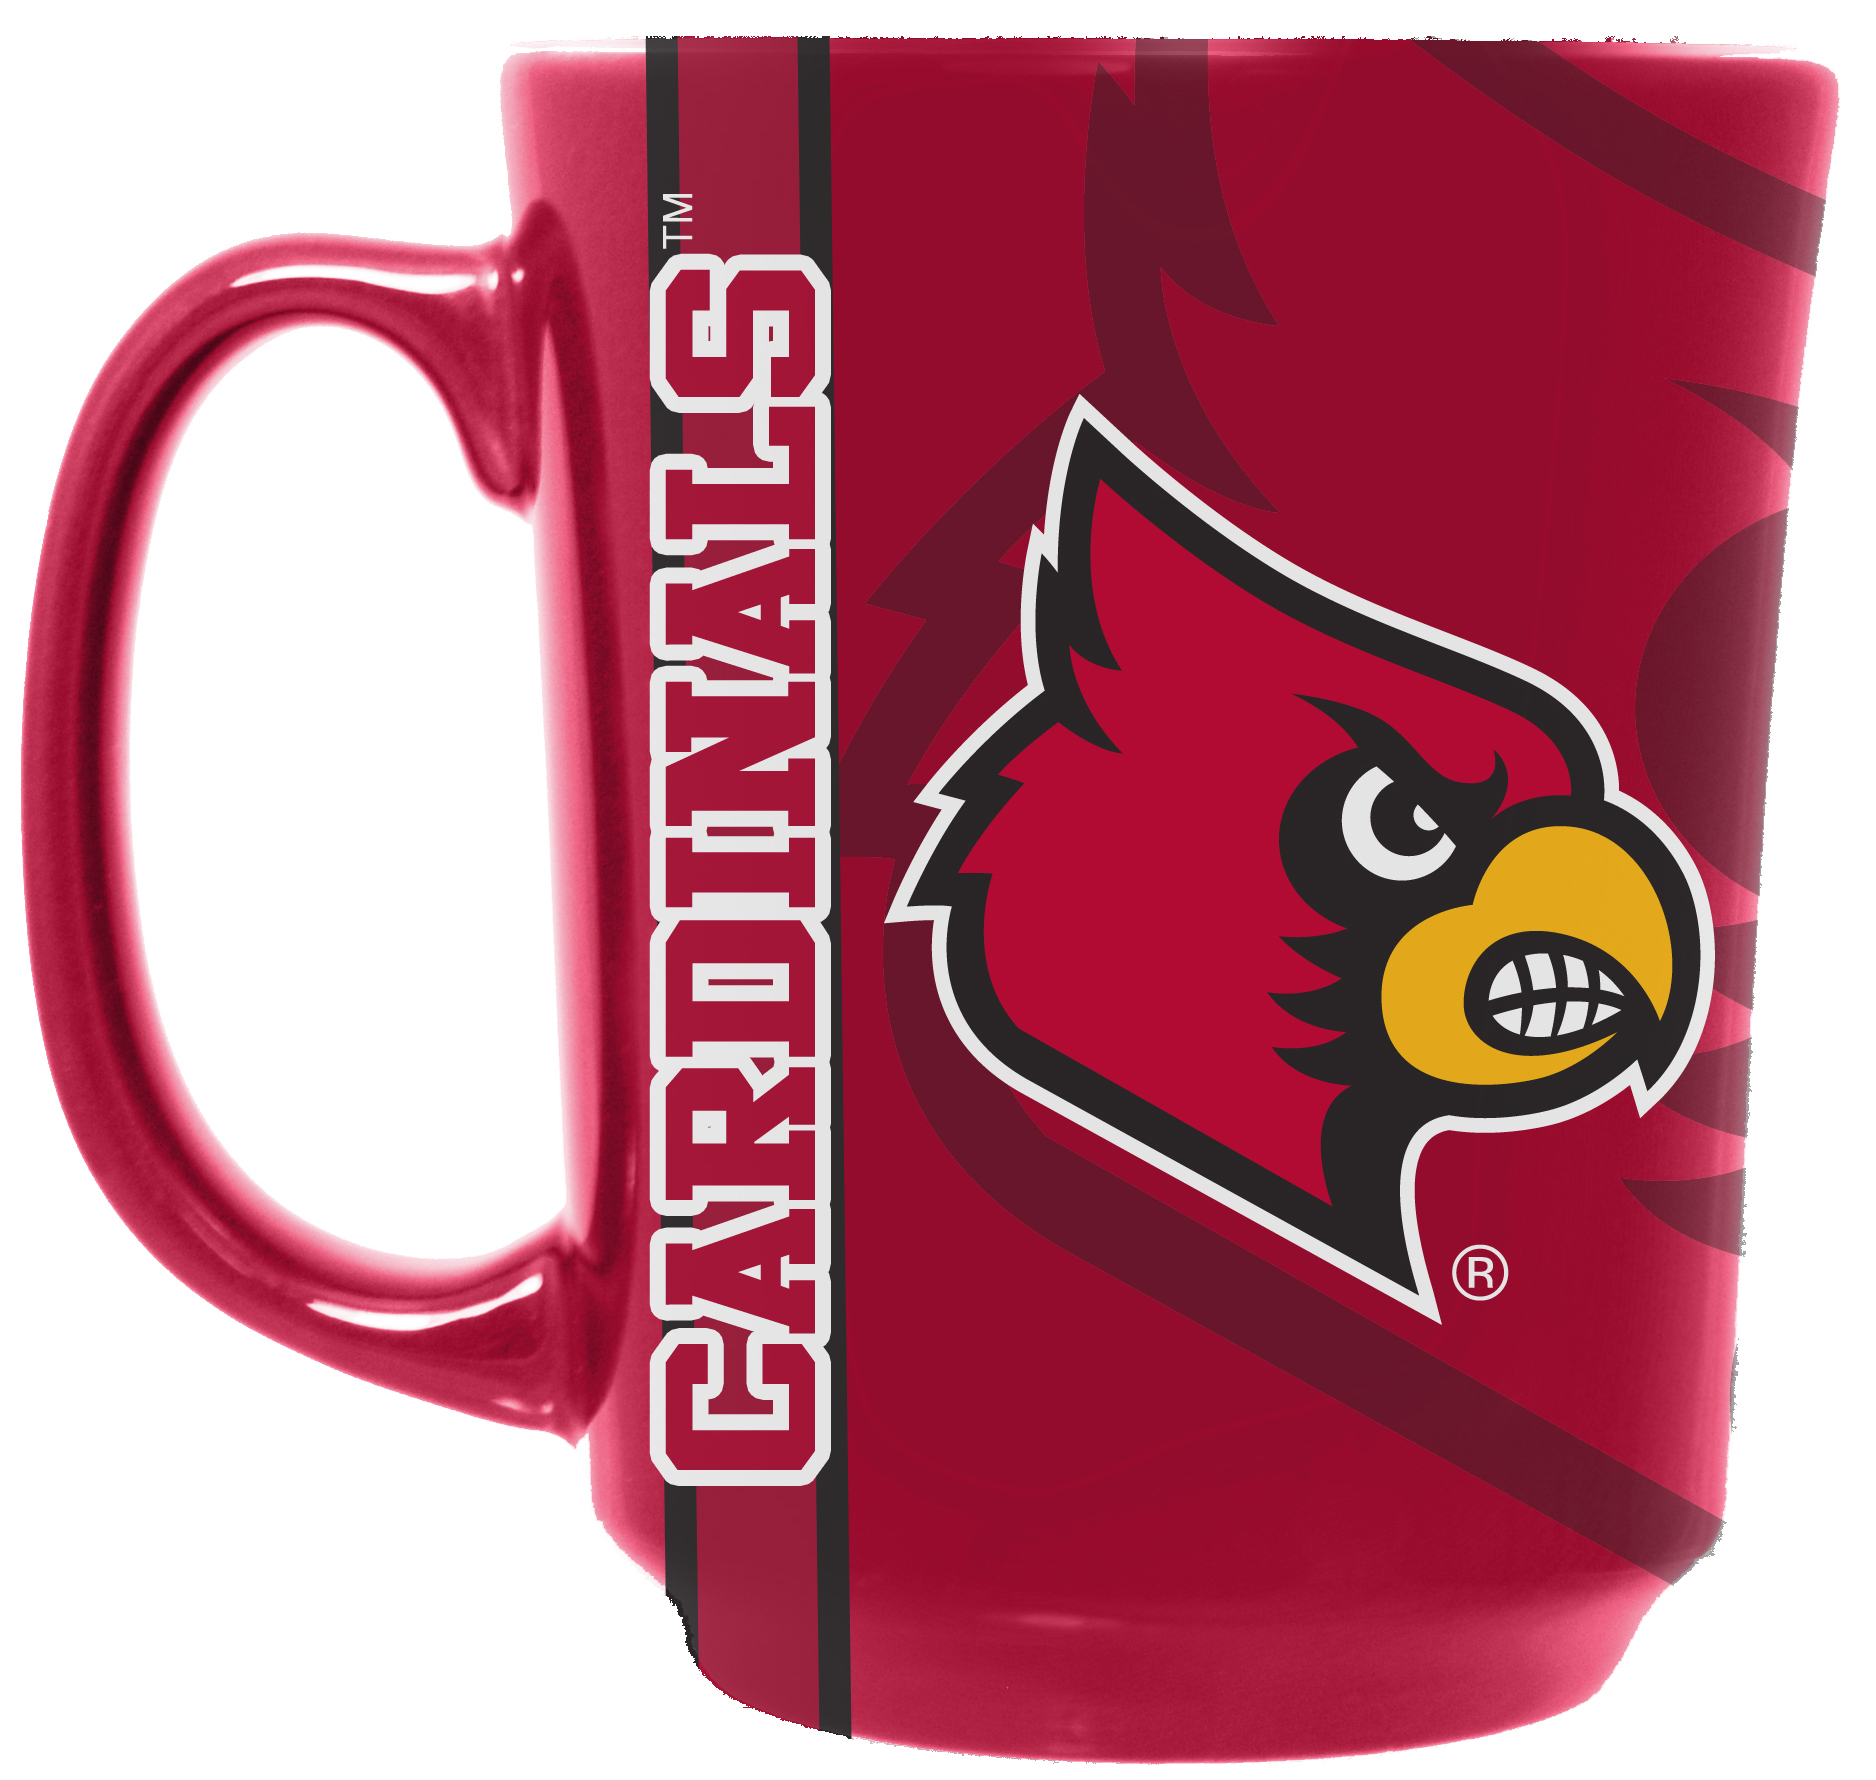 NCAA Reflective Mug, Louisviile